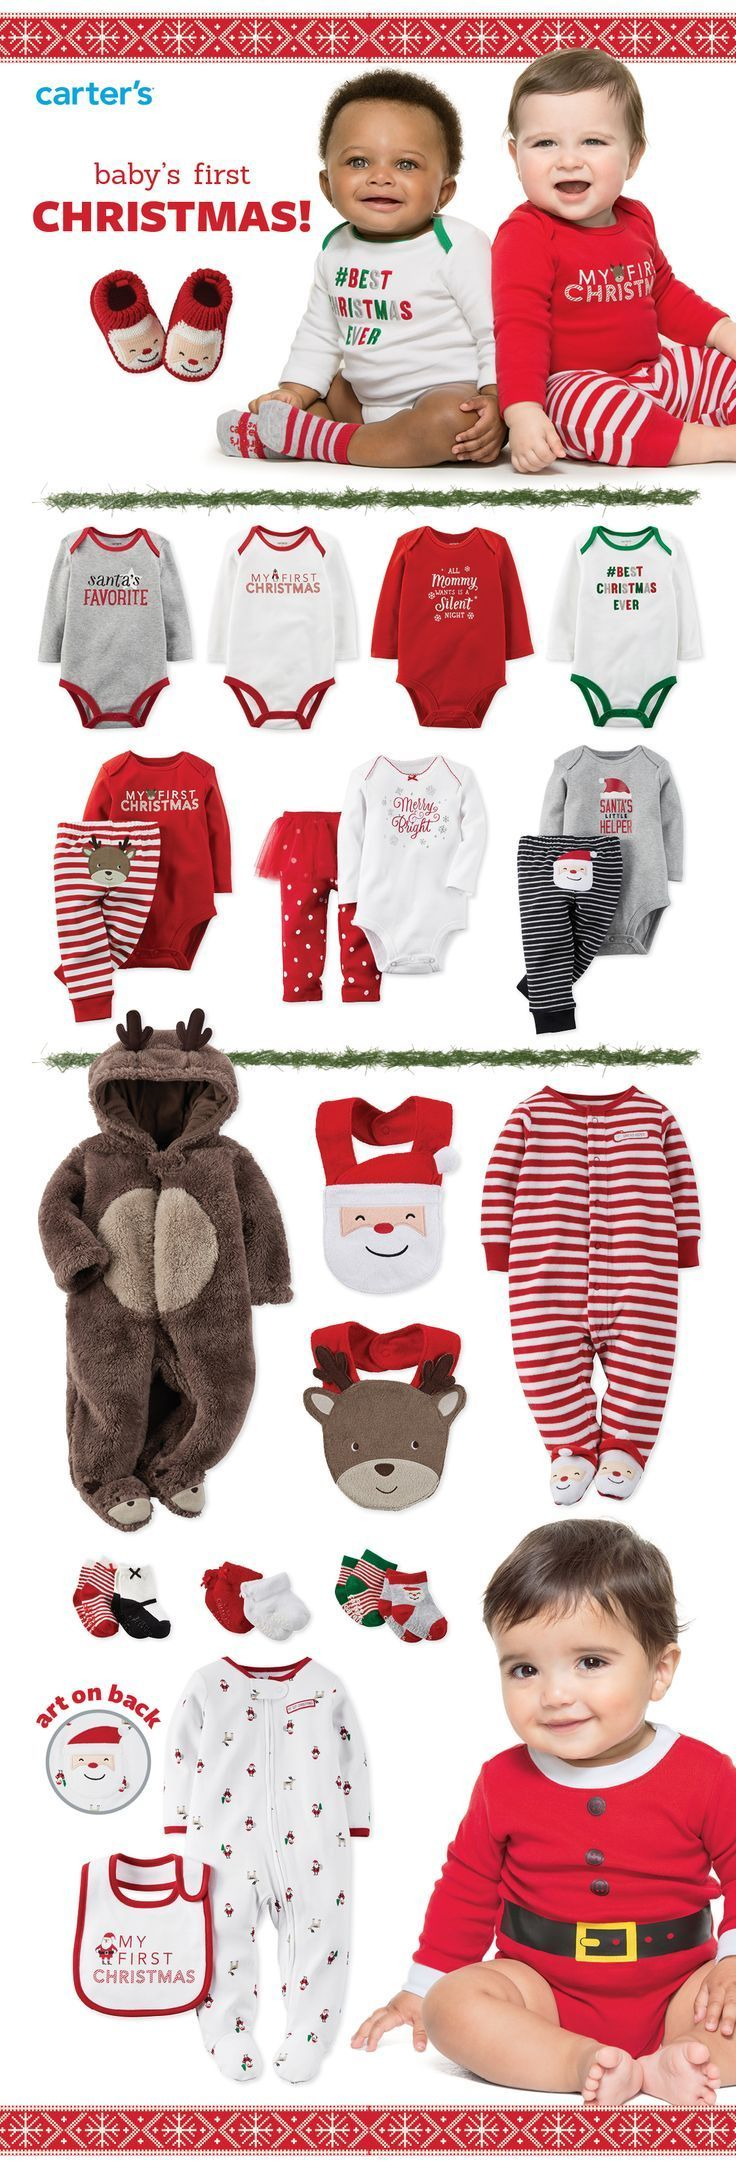 Your one-stop shop for baby's first Christmas! Holiday bodysuits, Santa suits, sleep & play, sets & little extras. We've got you covered head to toe!